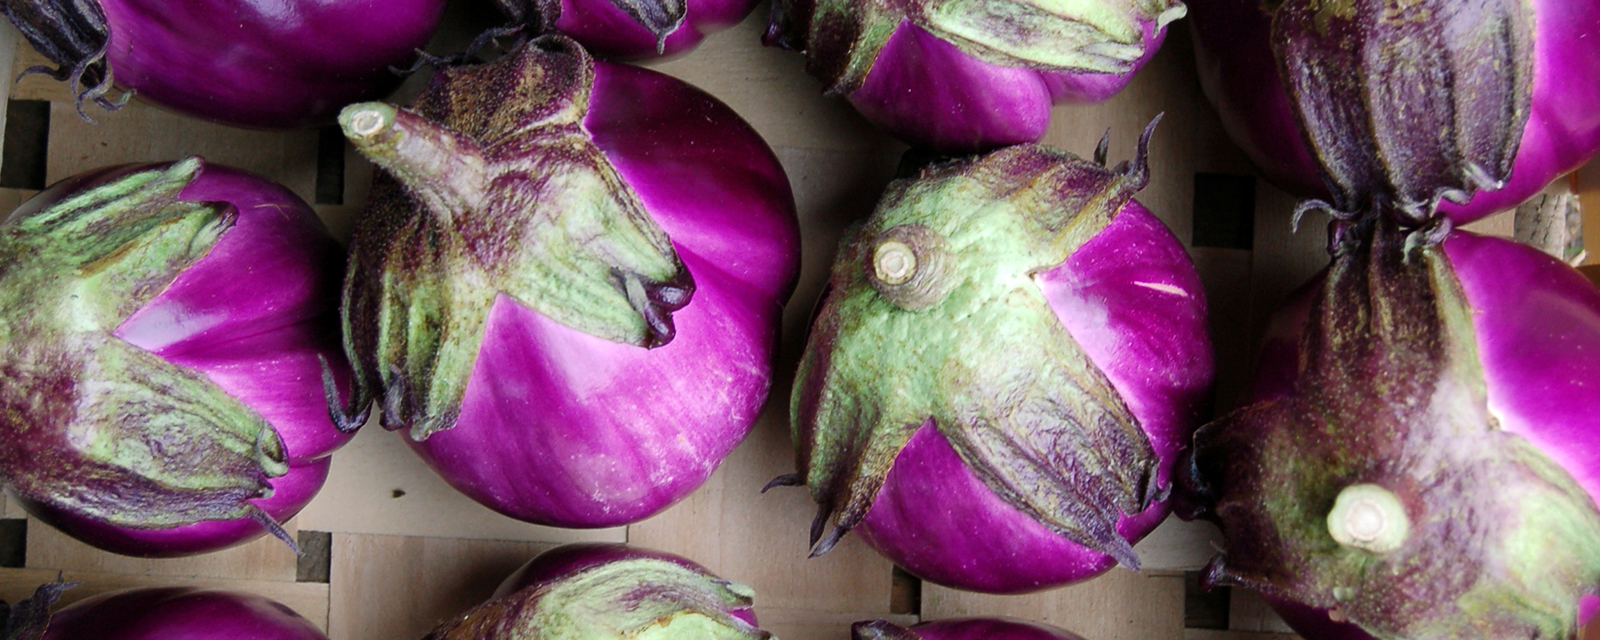 Eggplant from a farm in New Hampshire